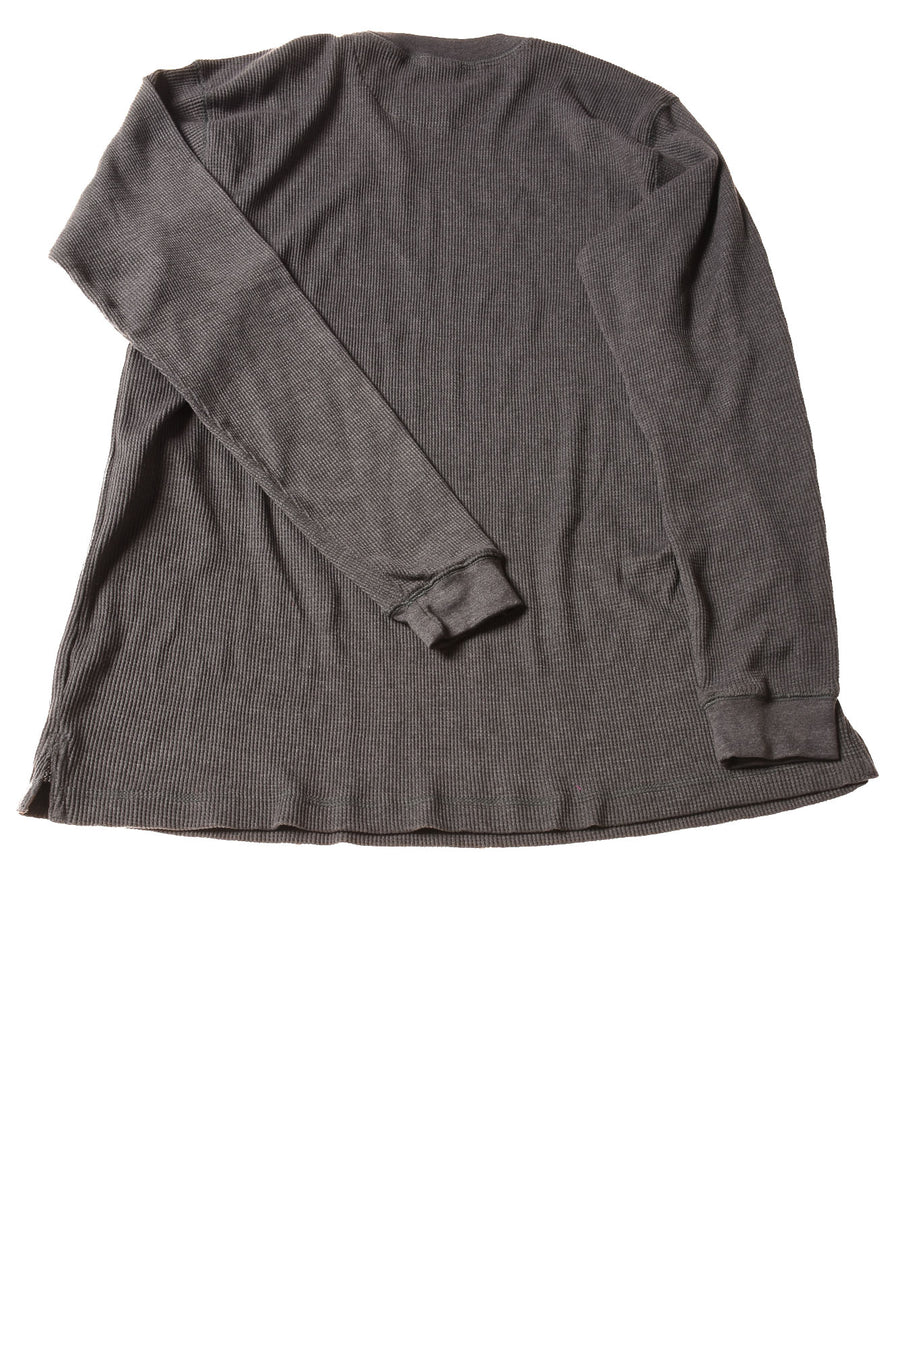 NEW Mountain Ridge Men's Shirt X-Large Gray